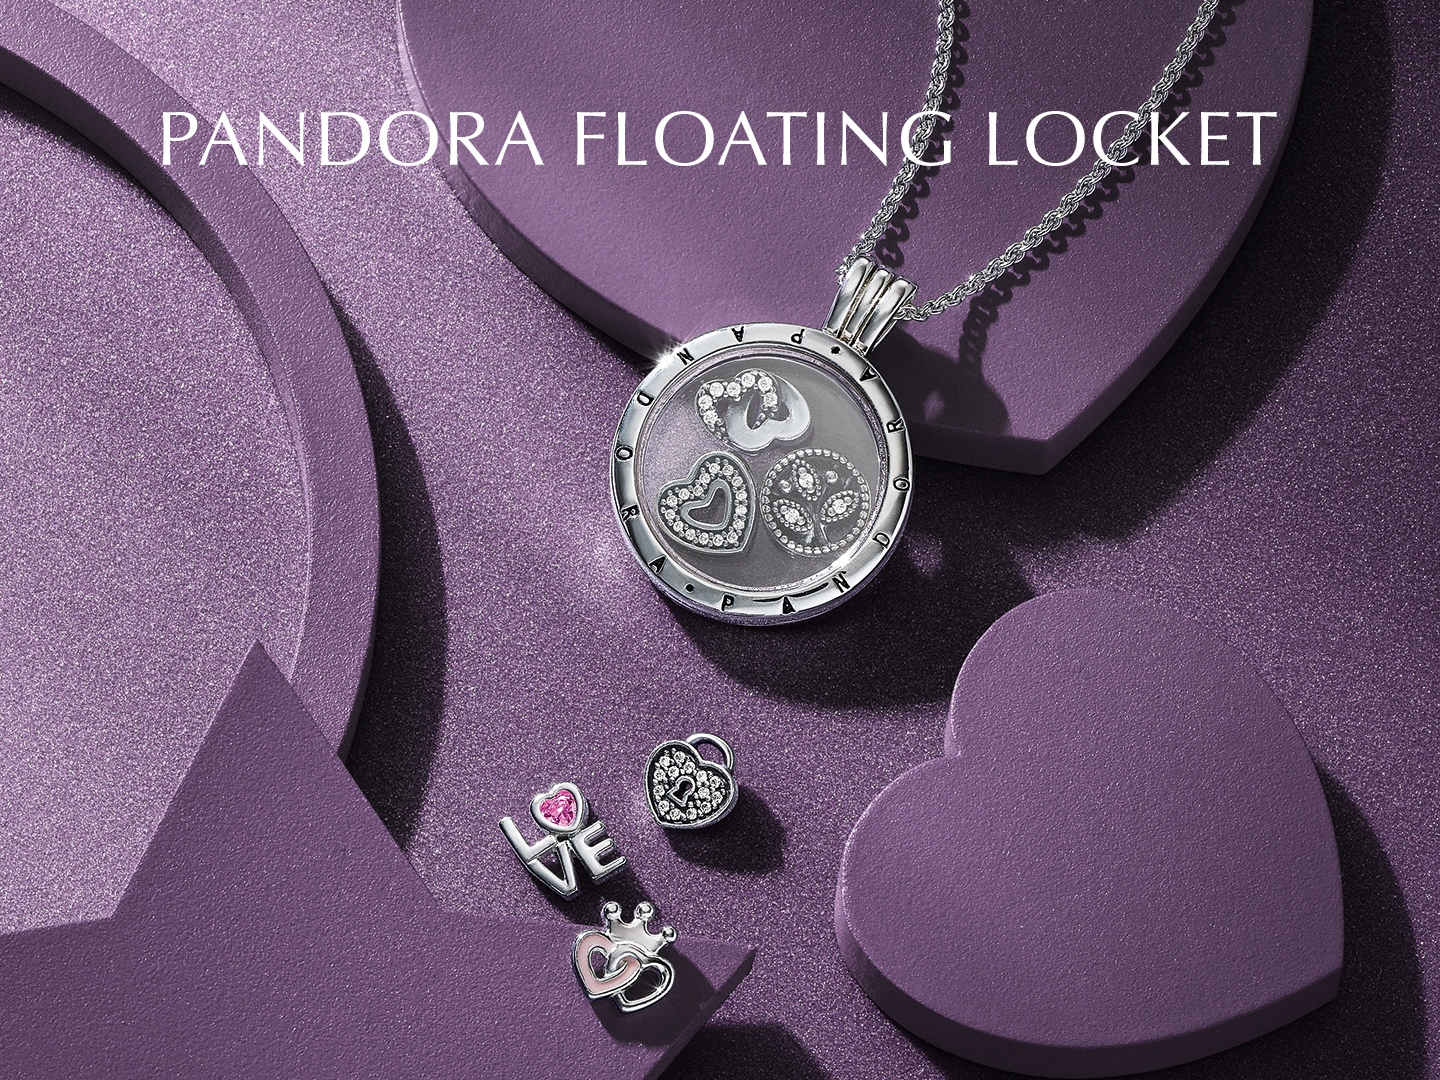 Pandora Floating Locket | Official Online Store Hong Kong | Pando Within Current Pandora Moments Large O Pendant Necklaces (View 16 of 25)